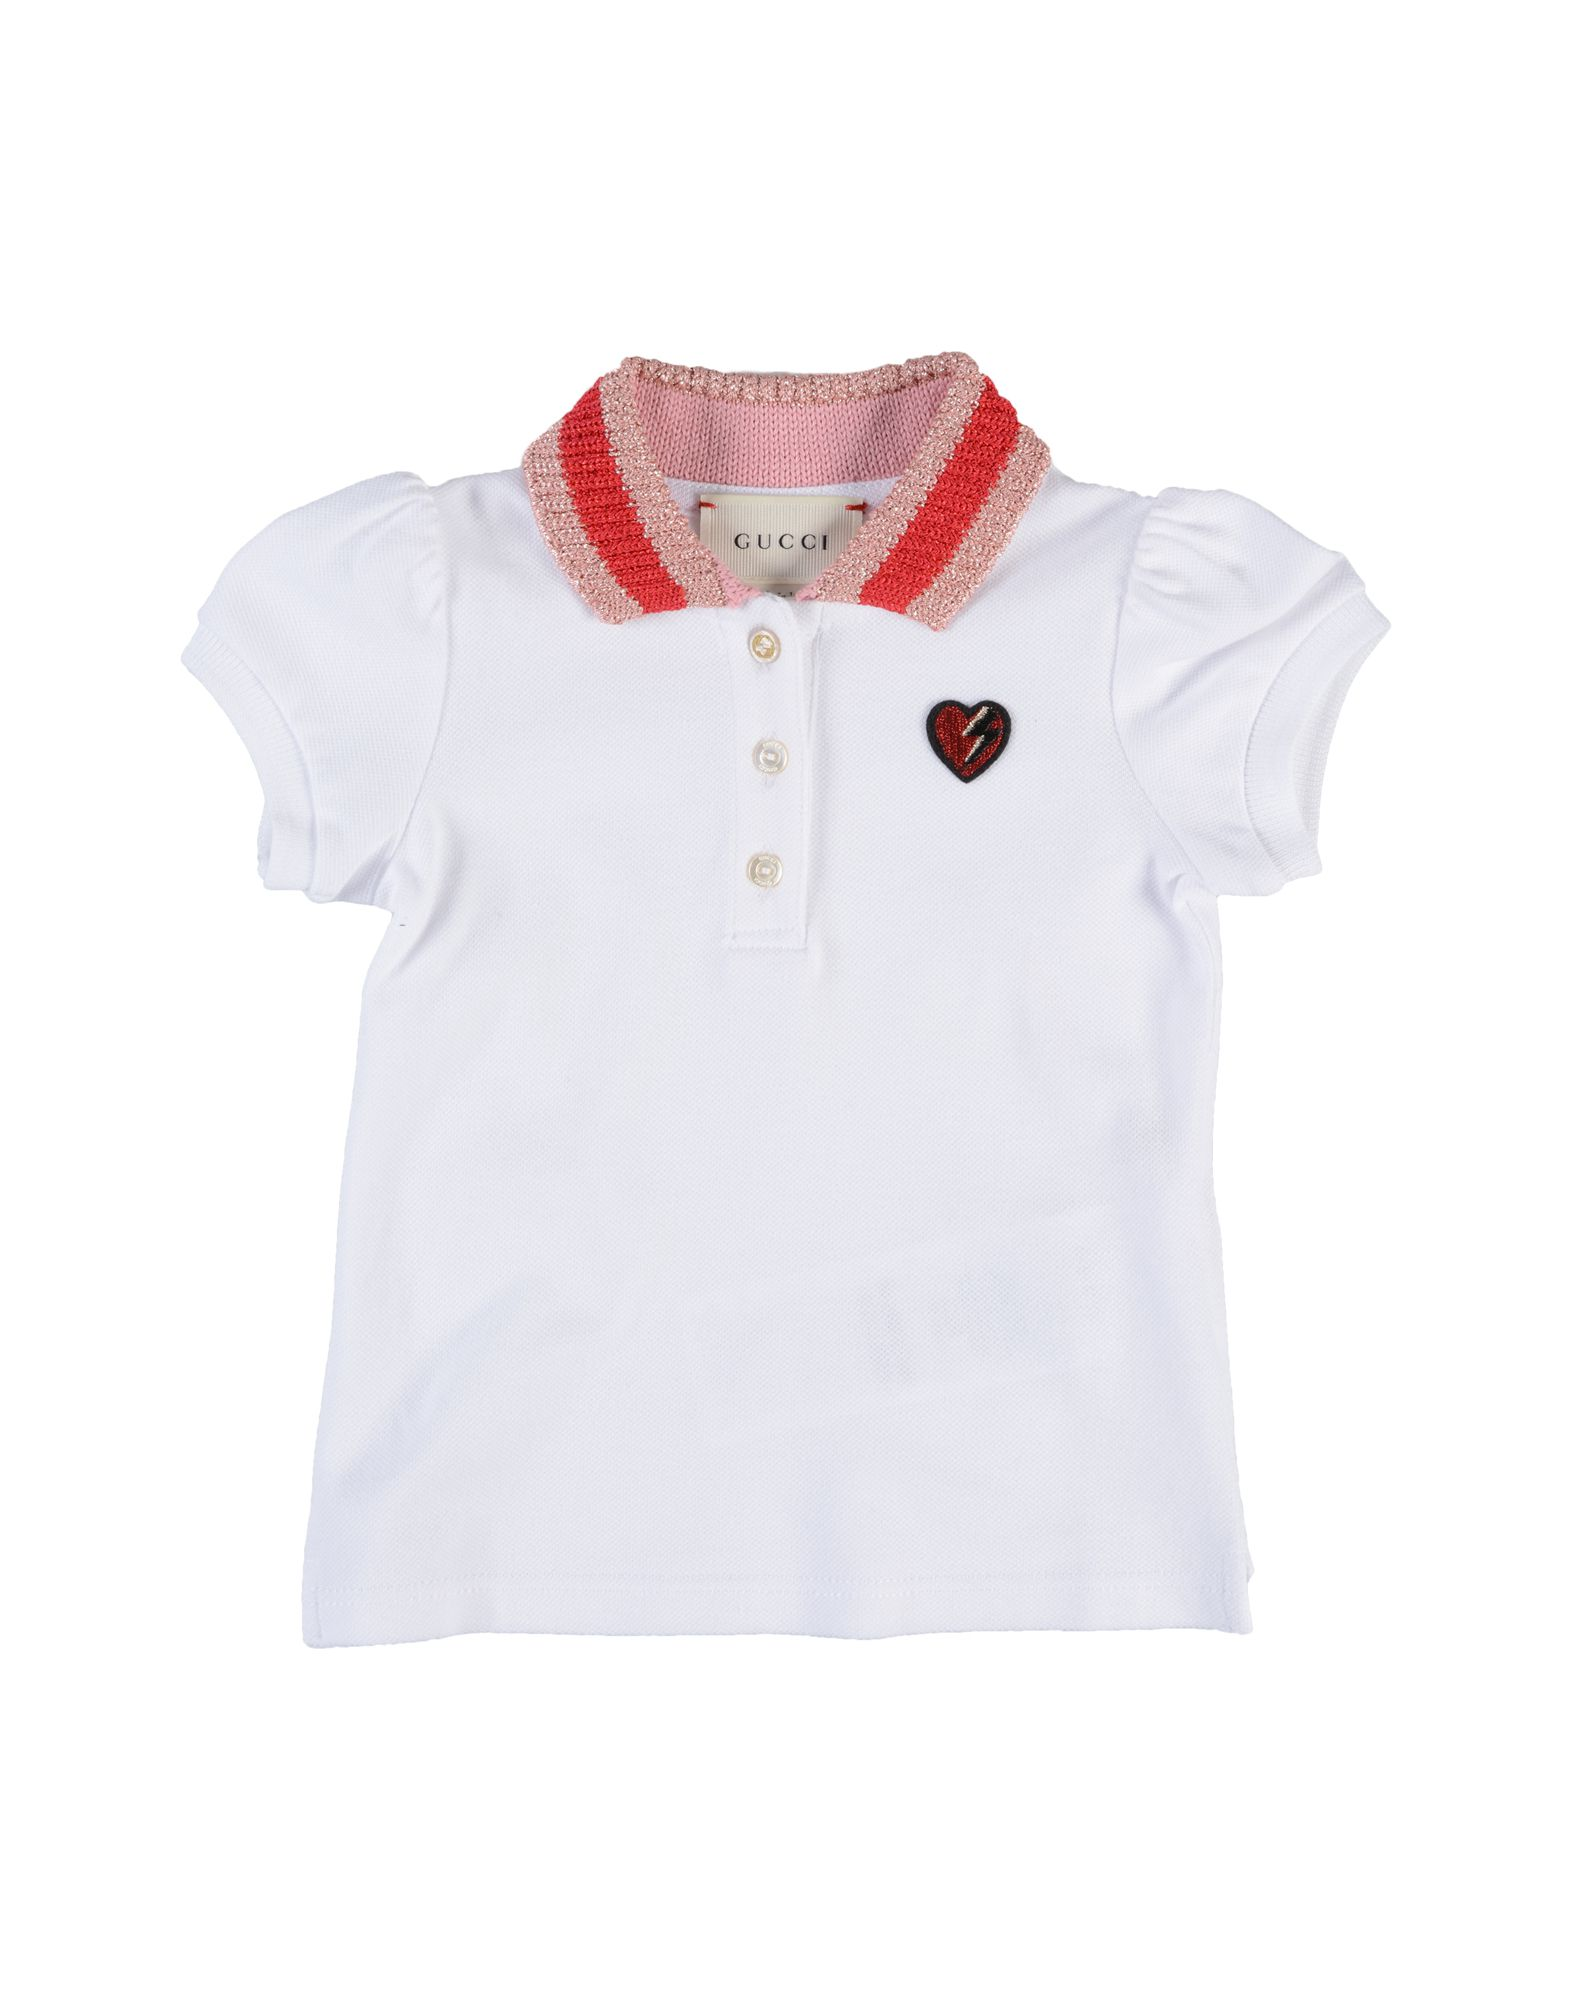 5a093a3e7 Gucci Polo Shirt Girl 0-24 months online on YOOX Portugal